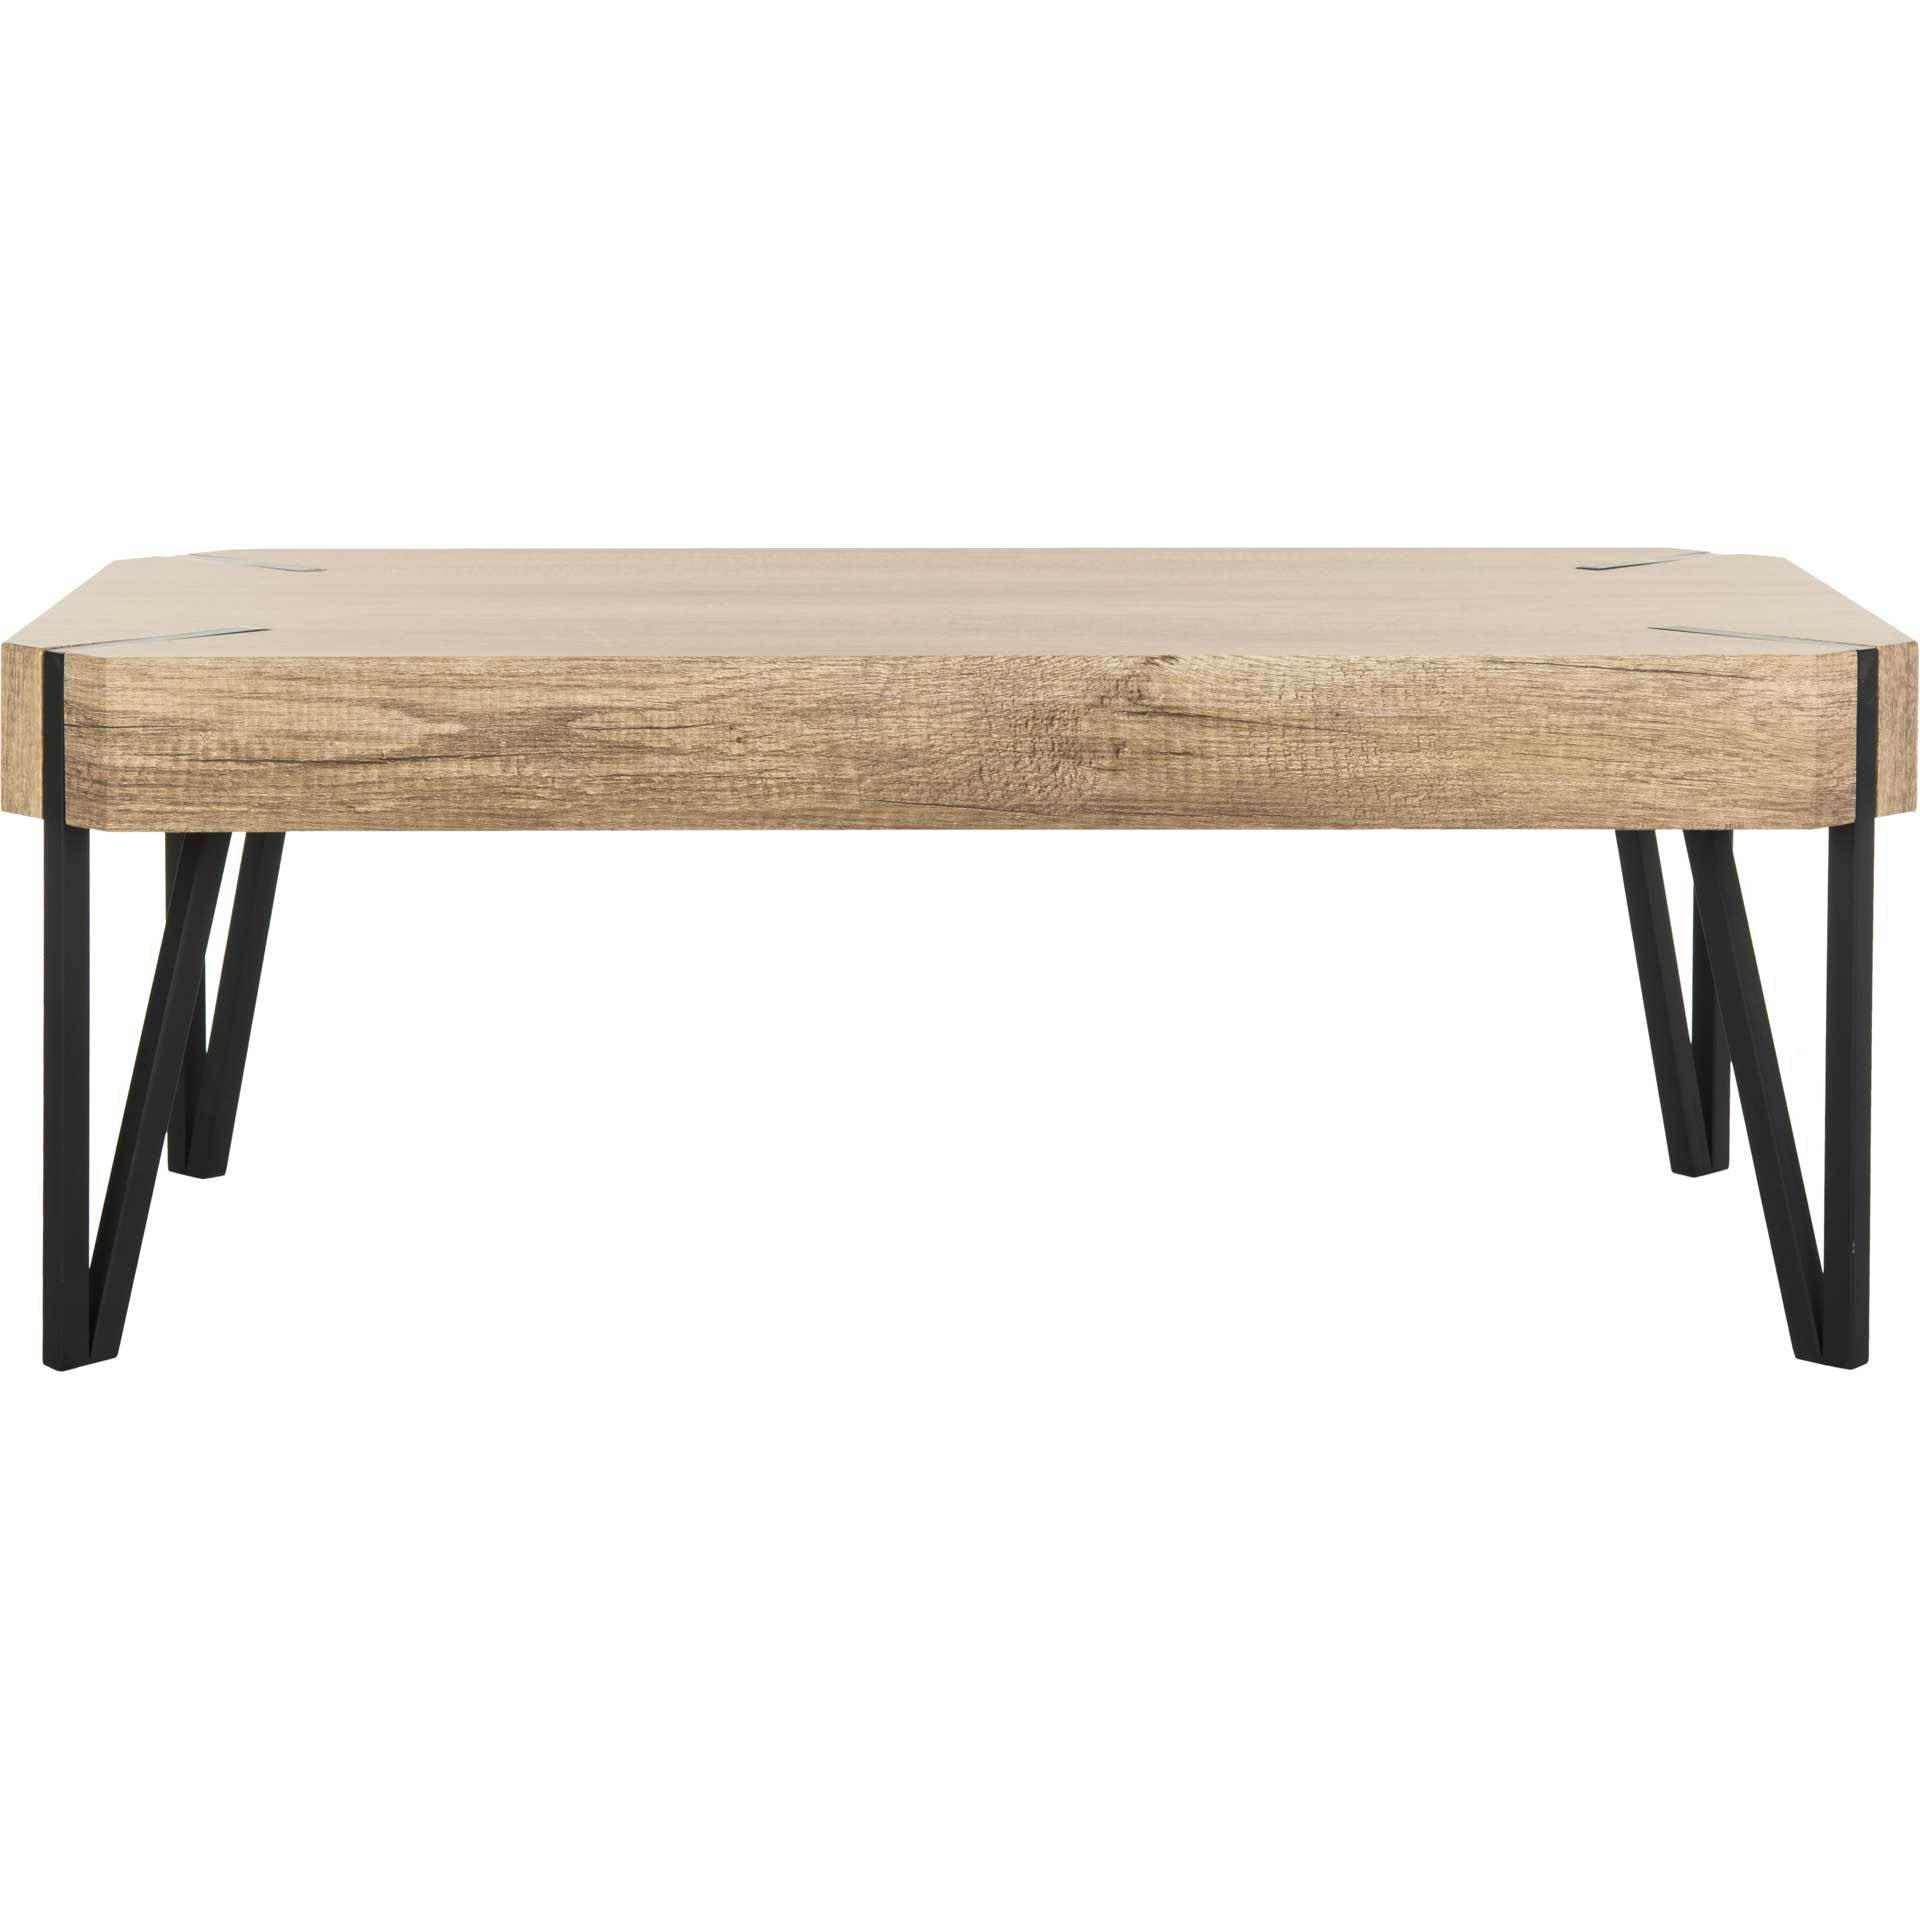 Livia Wood Top Coffee Table